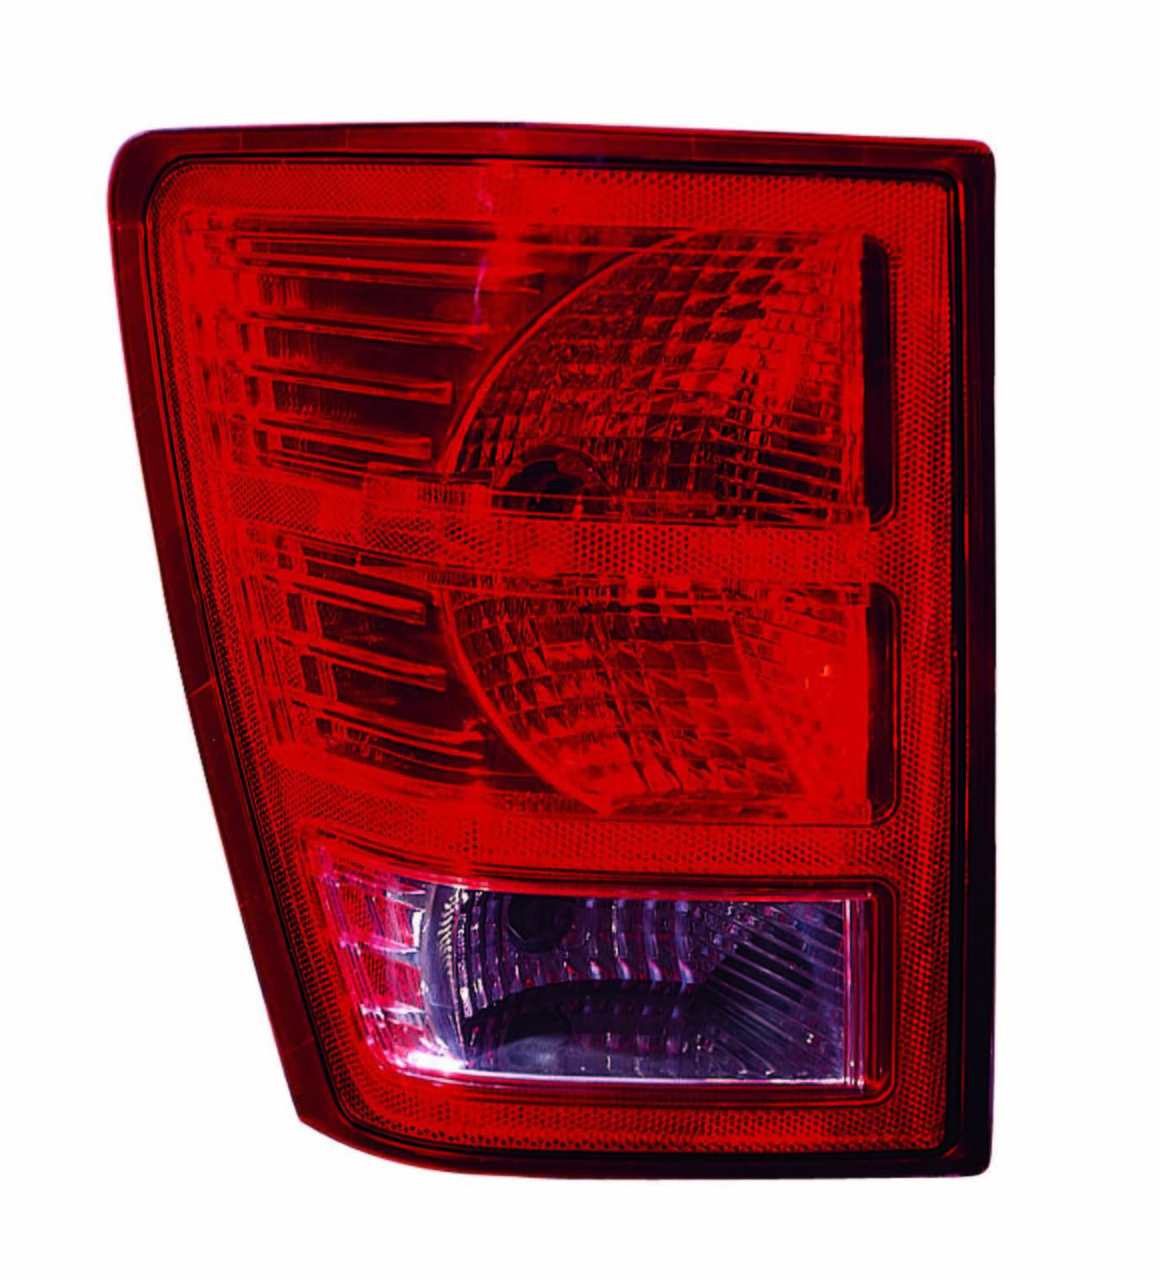 Jeep Grand Cherokee 2007 2008 2009 2010 tail light left driver